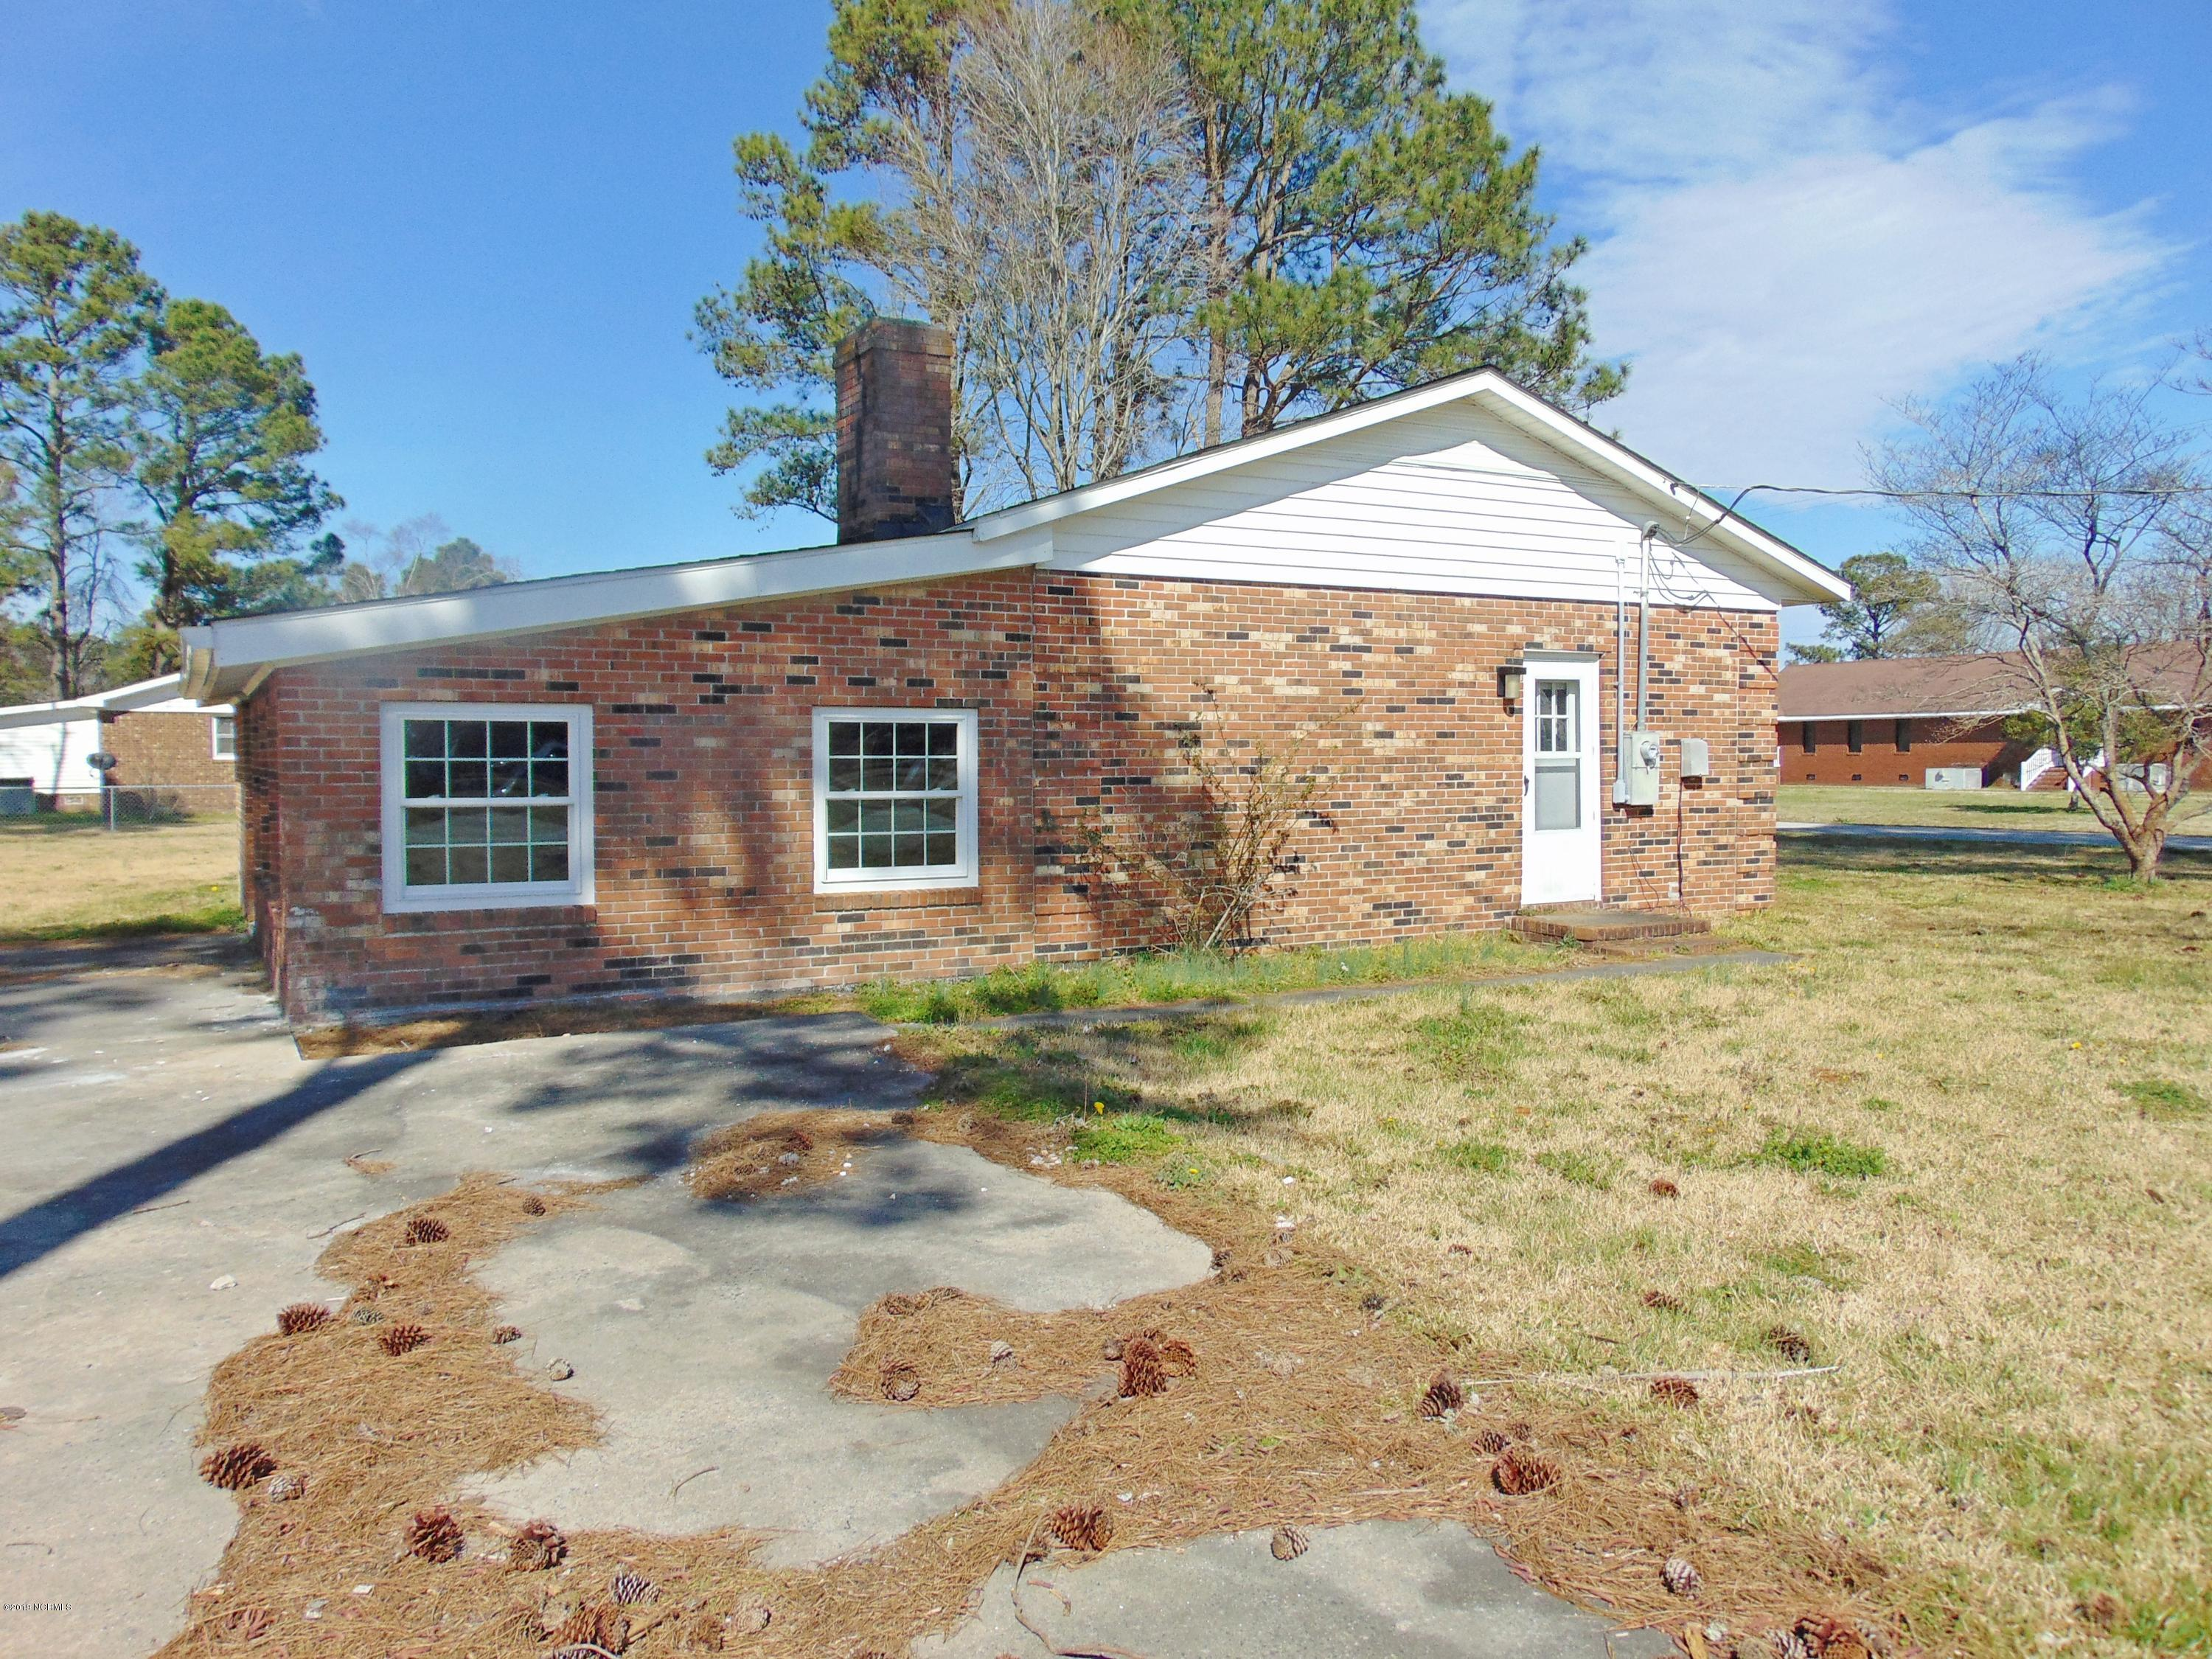 390 6th Street, Aurora, North Carolina 27806, 3 Bedrooms Bedrooms, 10 Rooms Rooms,1 BathroomBathrooms,Single family residence,For sale,6th,100162054